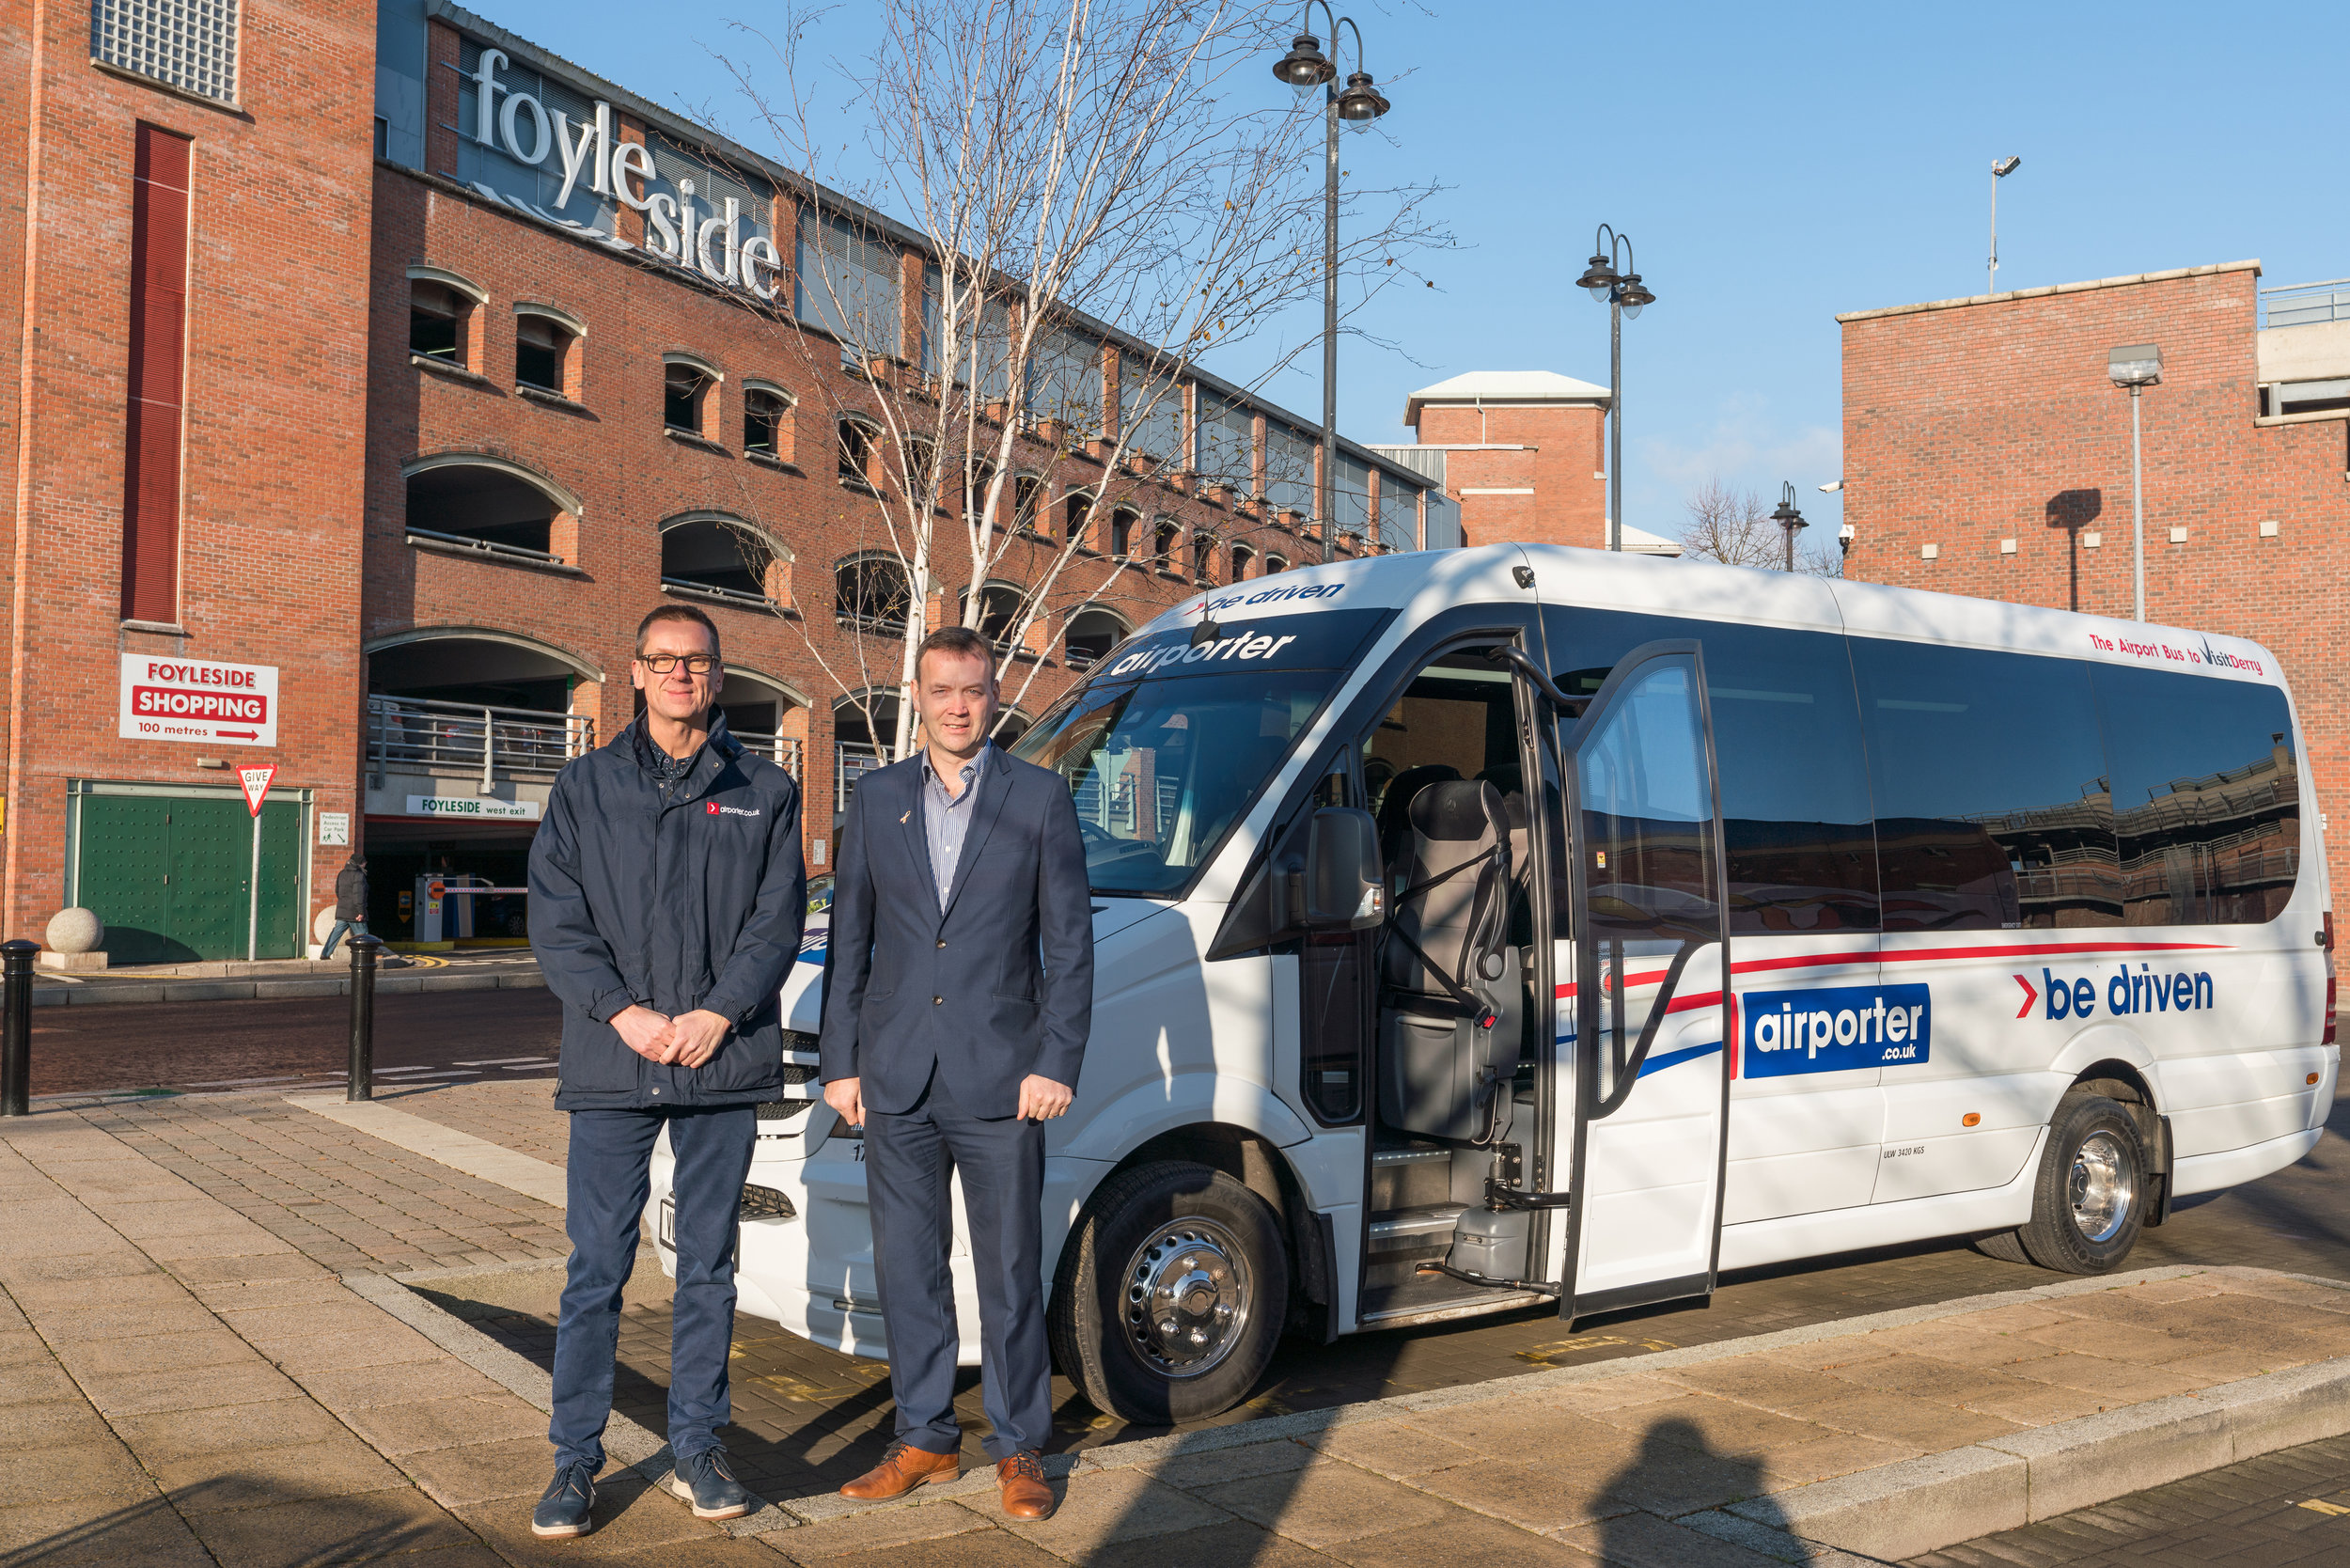 Niall McKeever, Director of Airporter and Fergal Rafferty, Foyleside Centre Manager at the Foyleside Coach park.